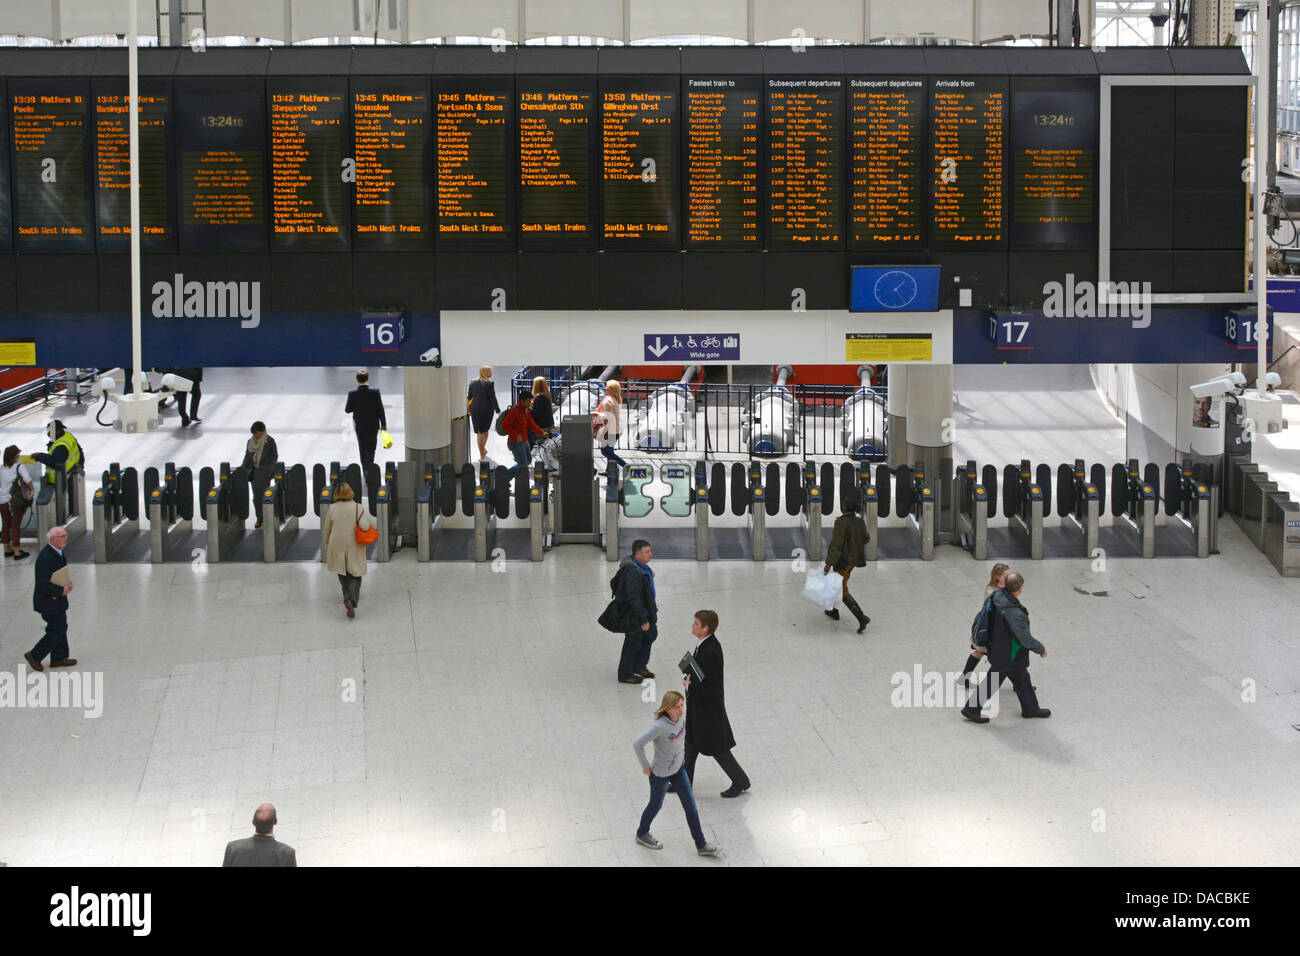 Waterloo railway station arrival and departure information panels above automated ticket barriers - Stock Image